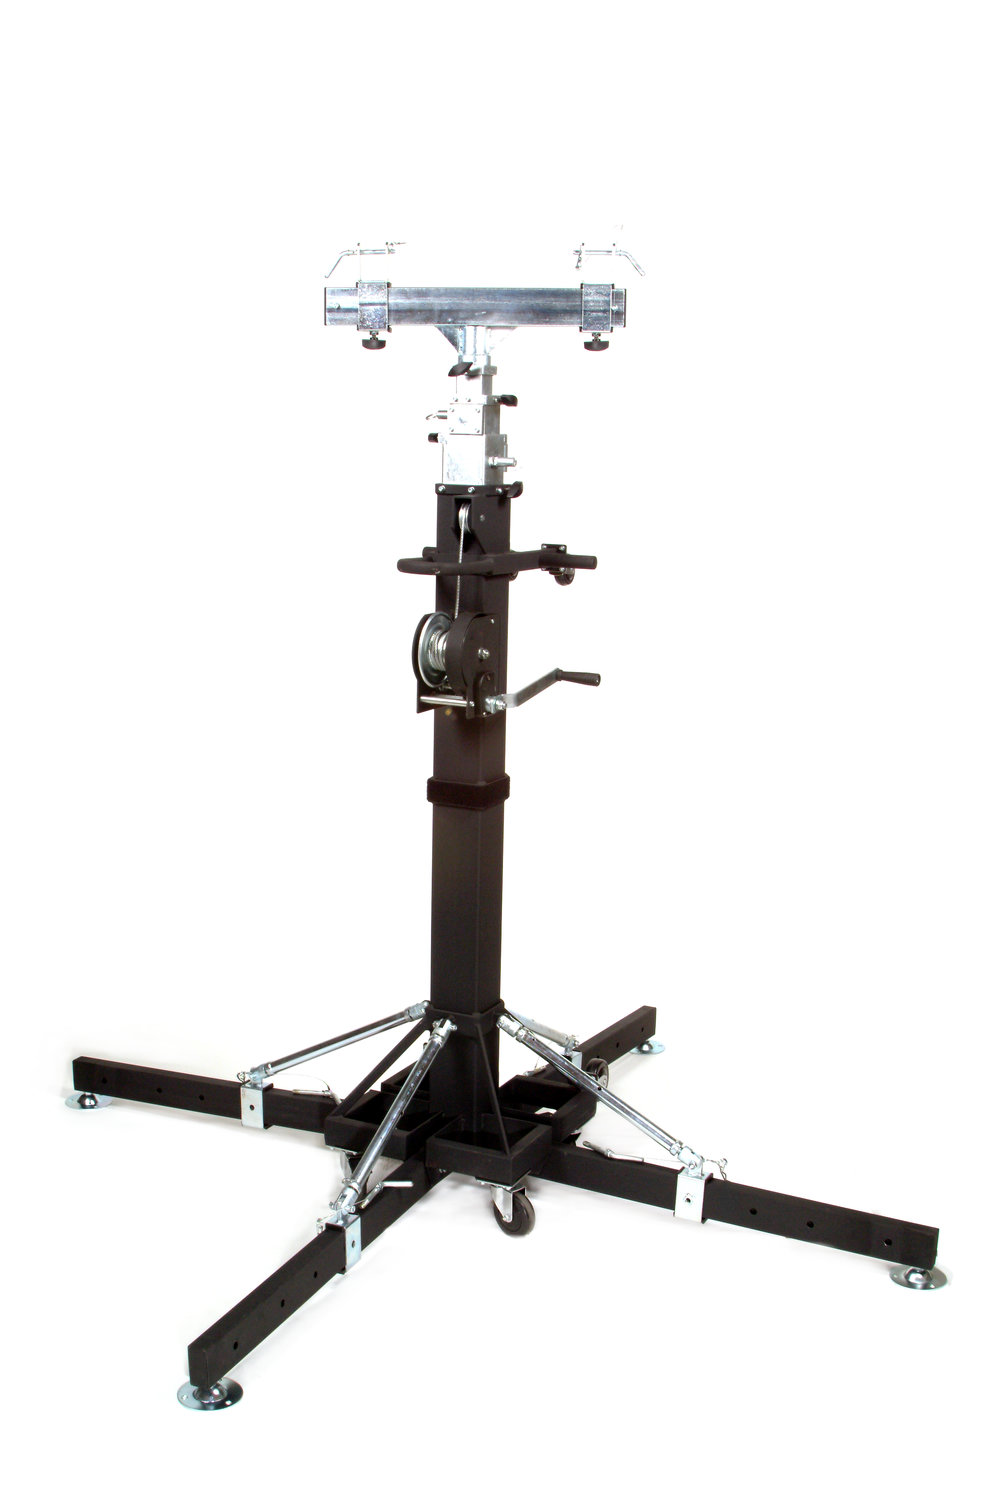 Global Truss ST-180 Crank Stand   This is a professional grade truss crank stand designed to get your lights, effects, speakers or video gear high above the crowd for optimum exposure. This pro grade crank stand is built solid just like...